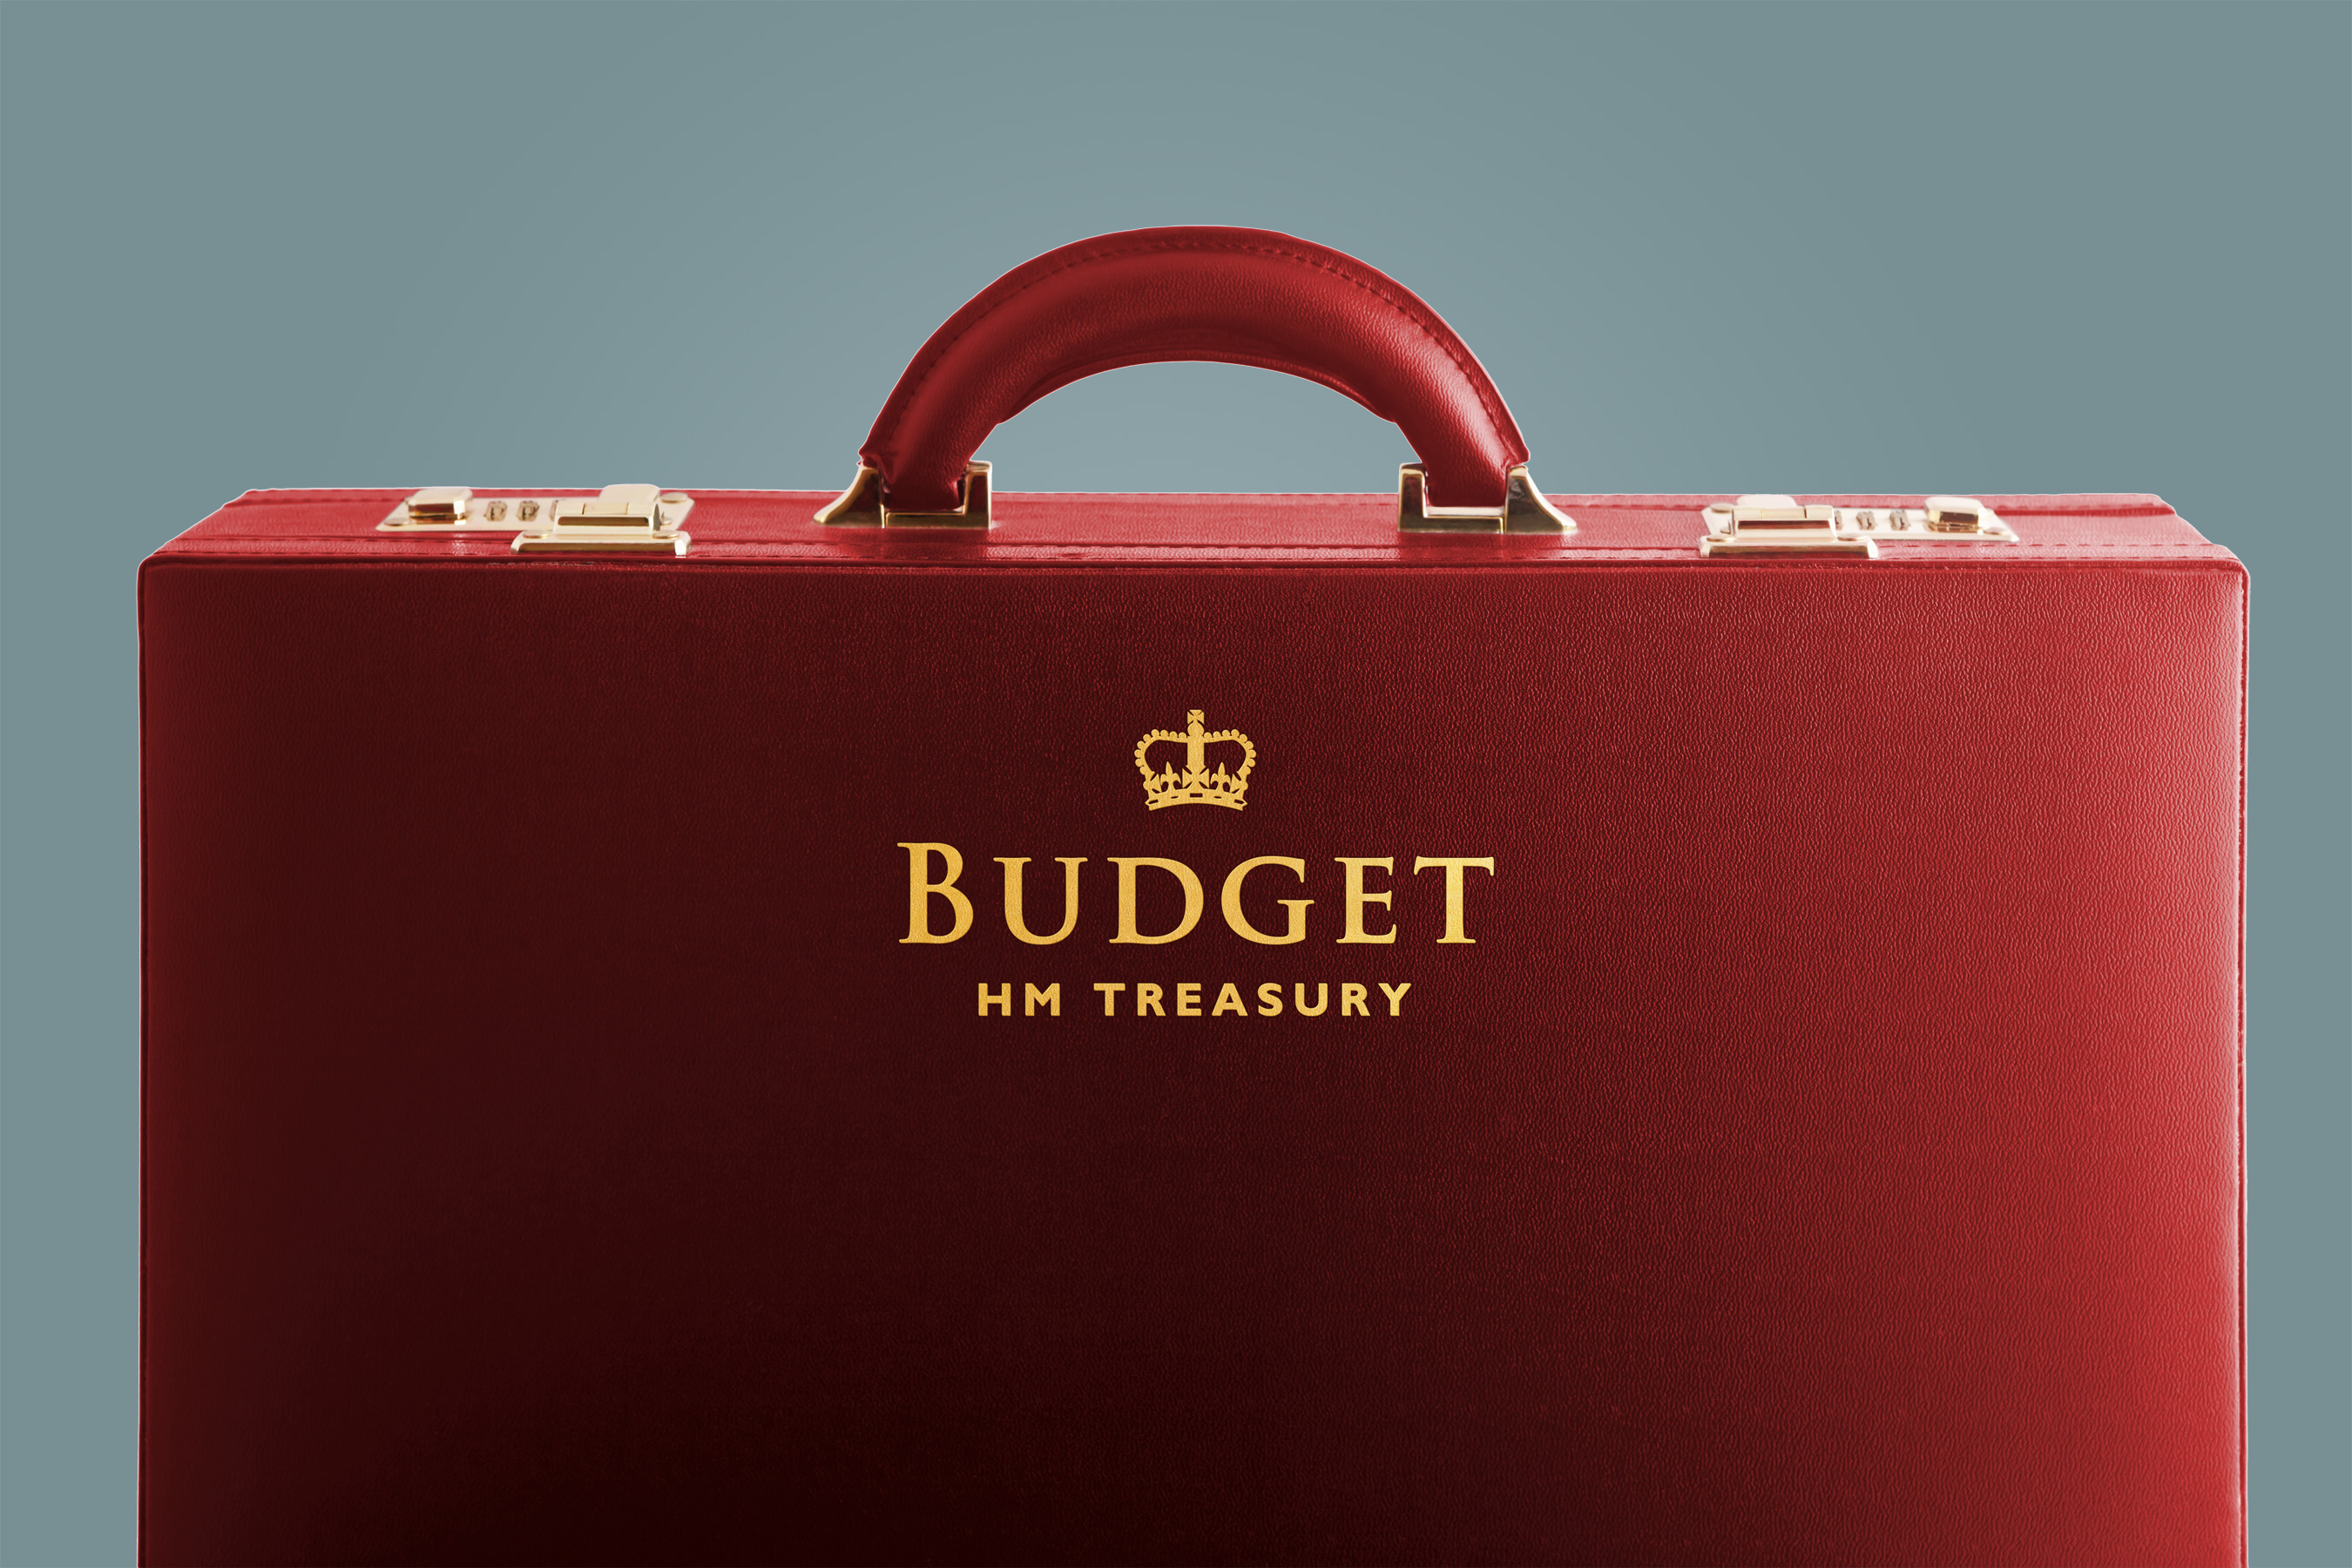 UK Treasury Budget briefcase